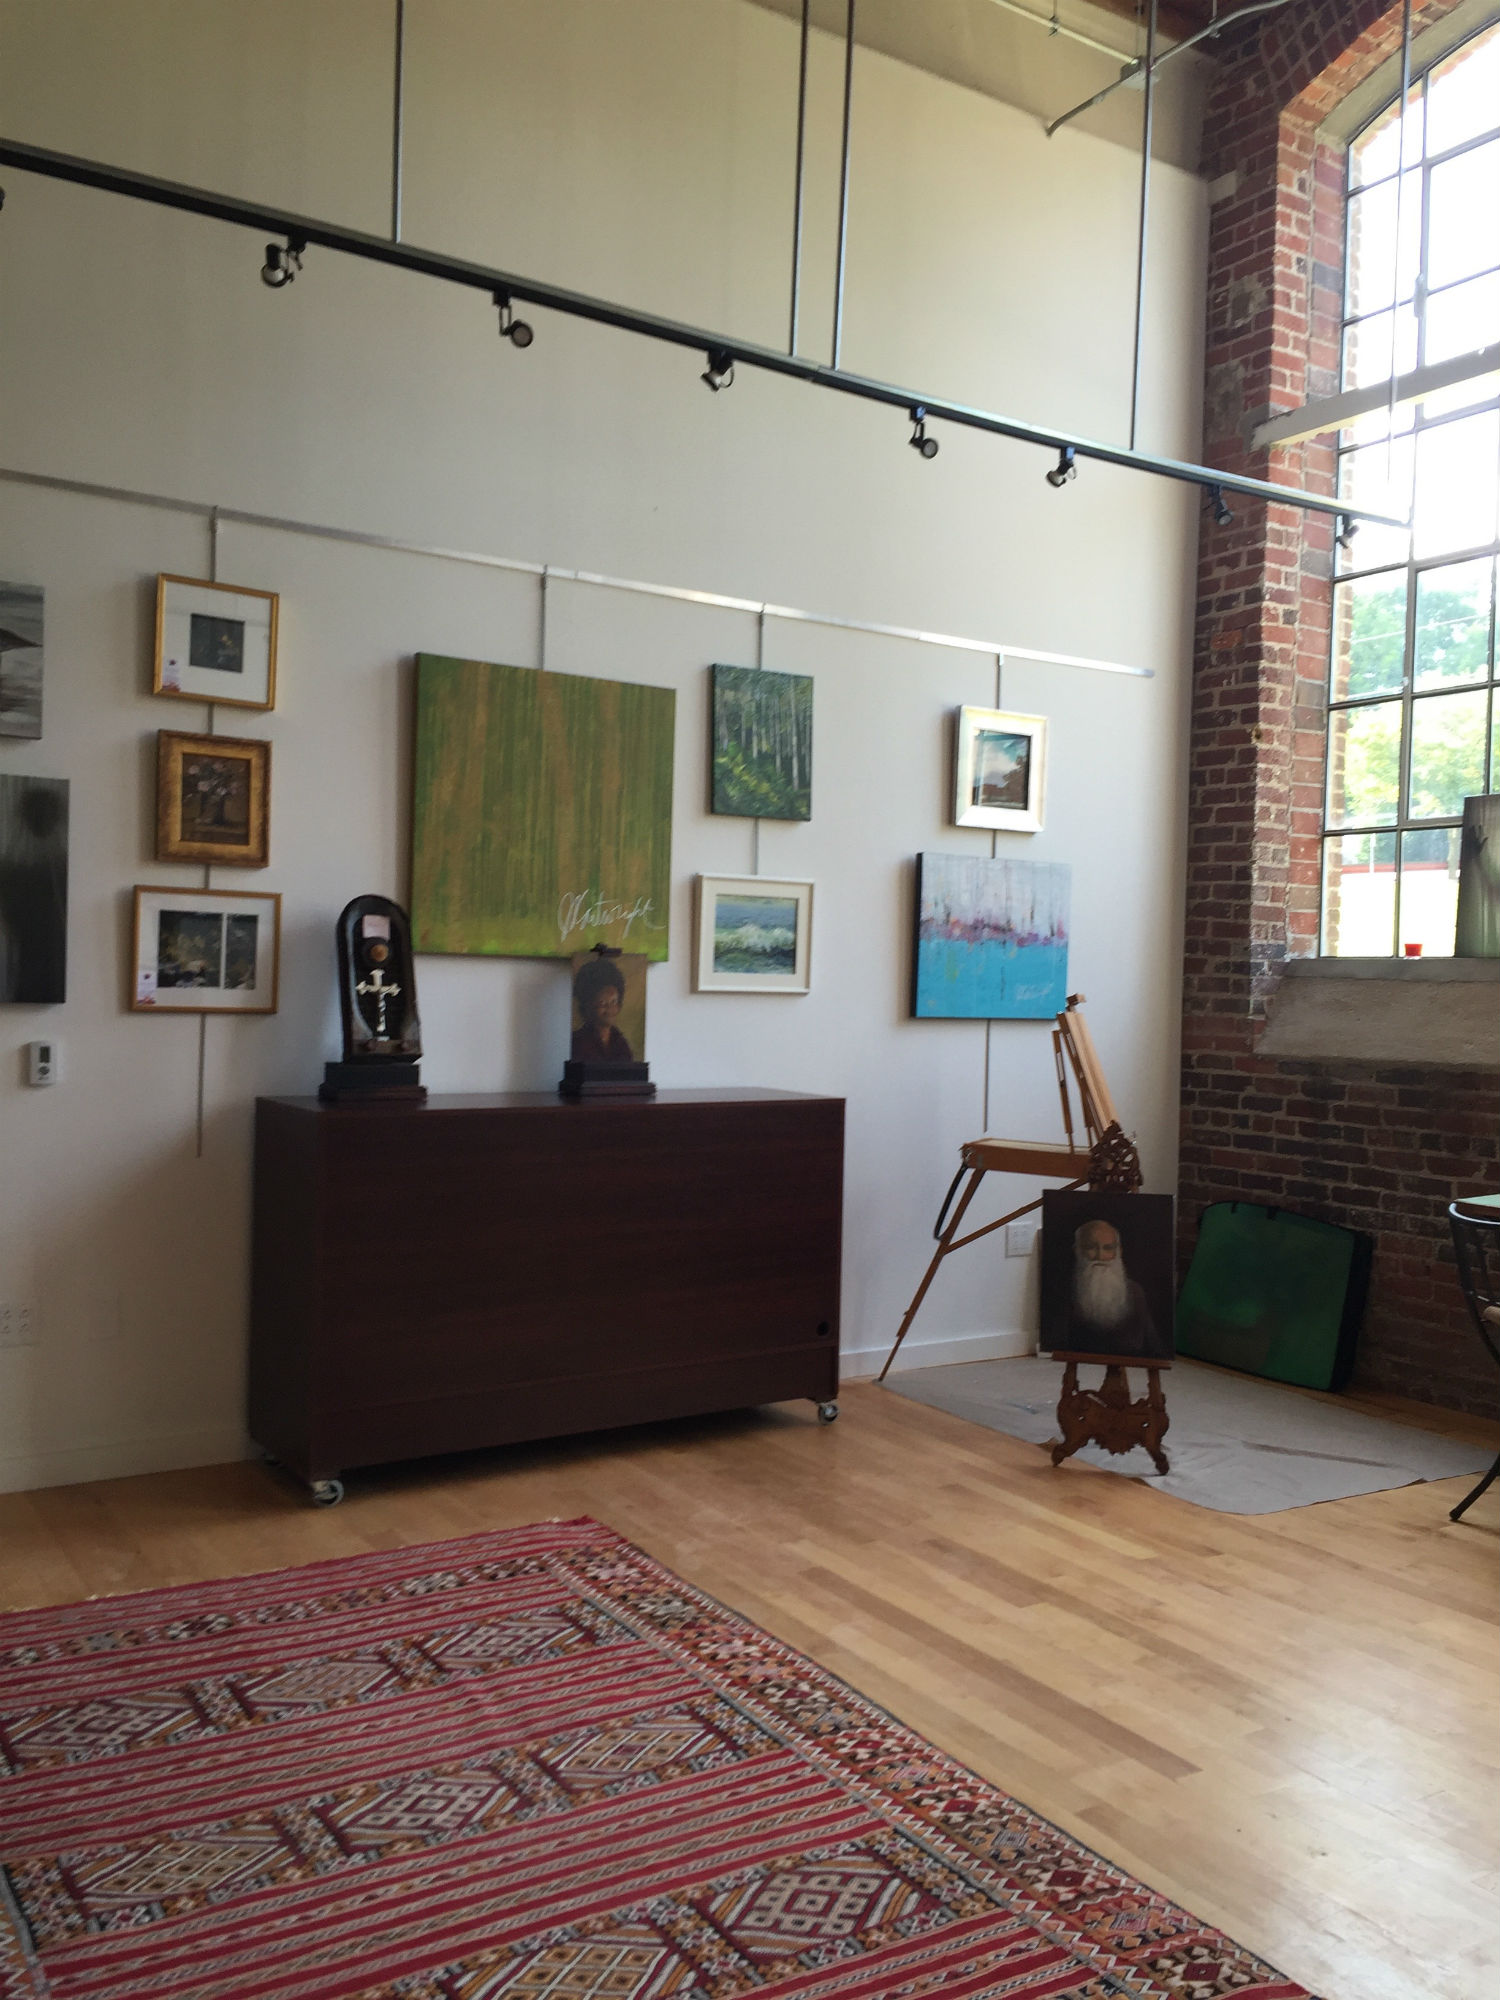 studio-revolution-mill-phyllis-sharpe-fine-art-painter-greensboro-nc-IMG_2297.jpg